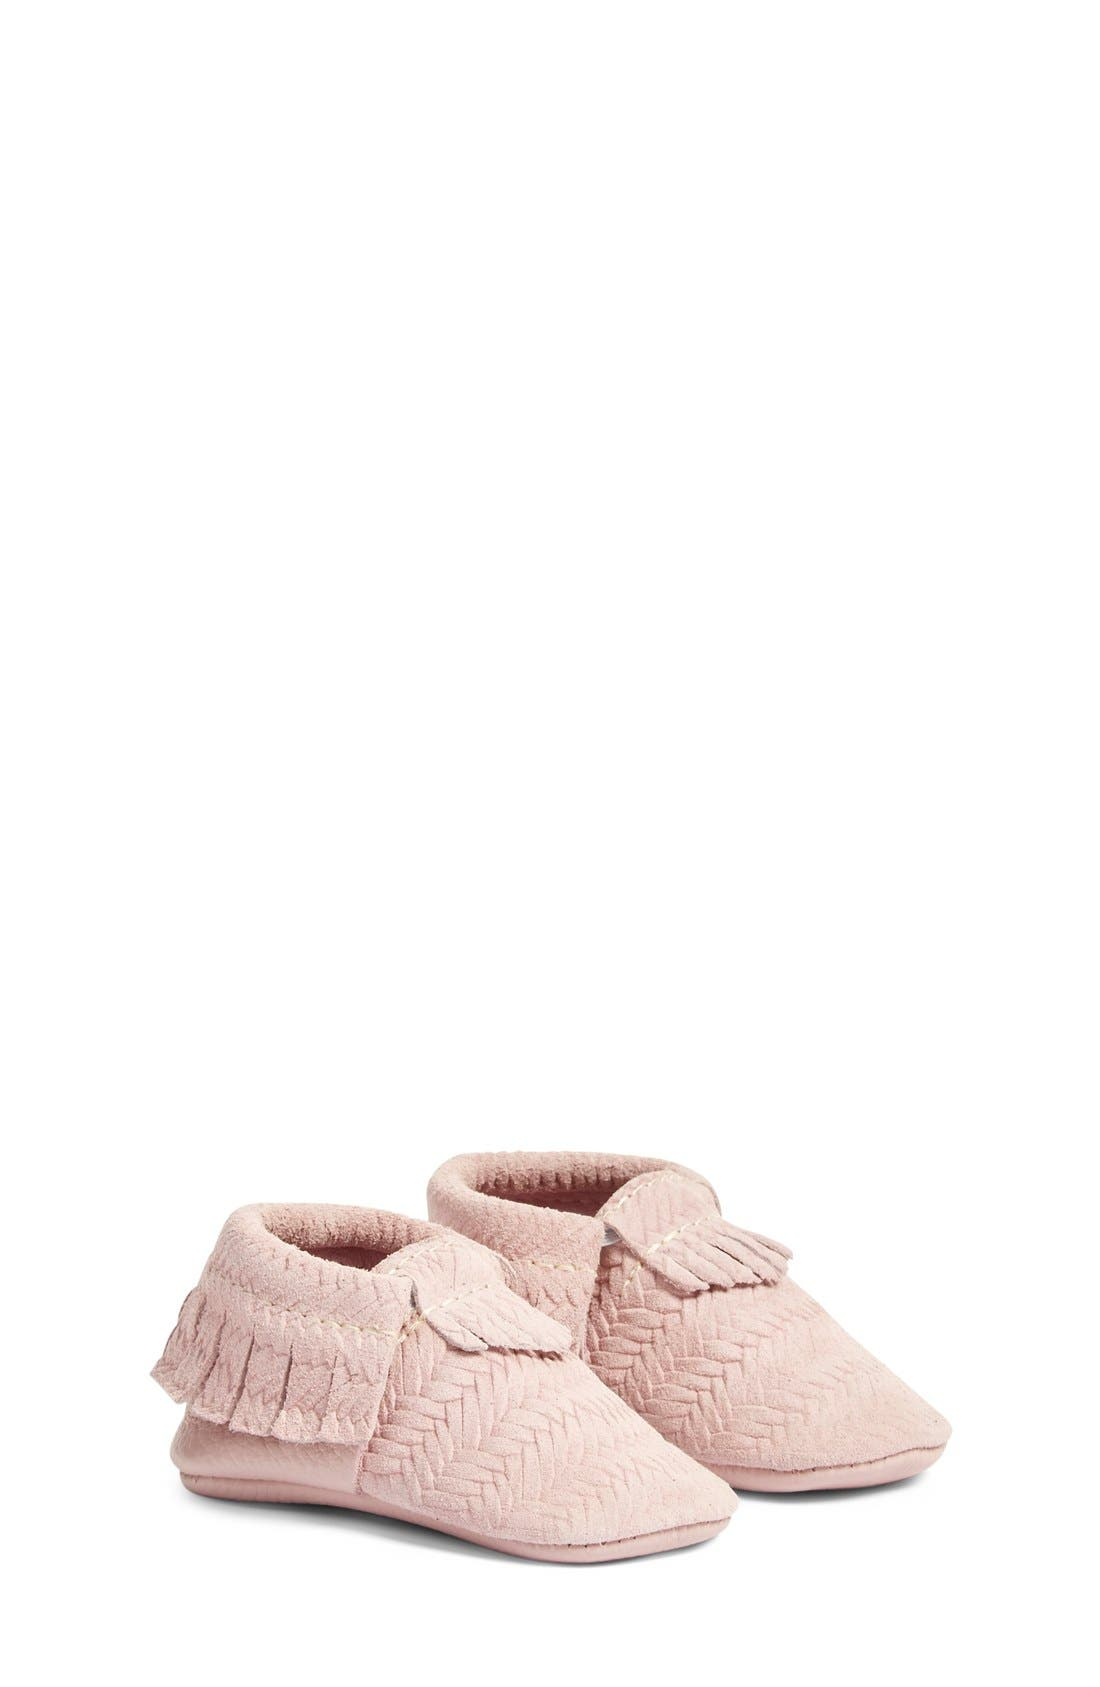 'Cardigan' Woven Leather Moccasin,                         Main,                         color, 680